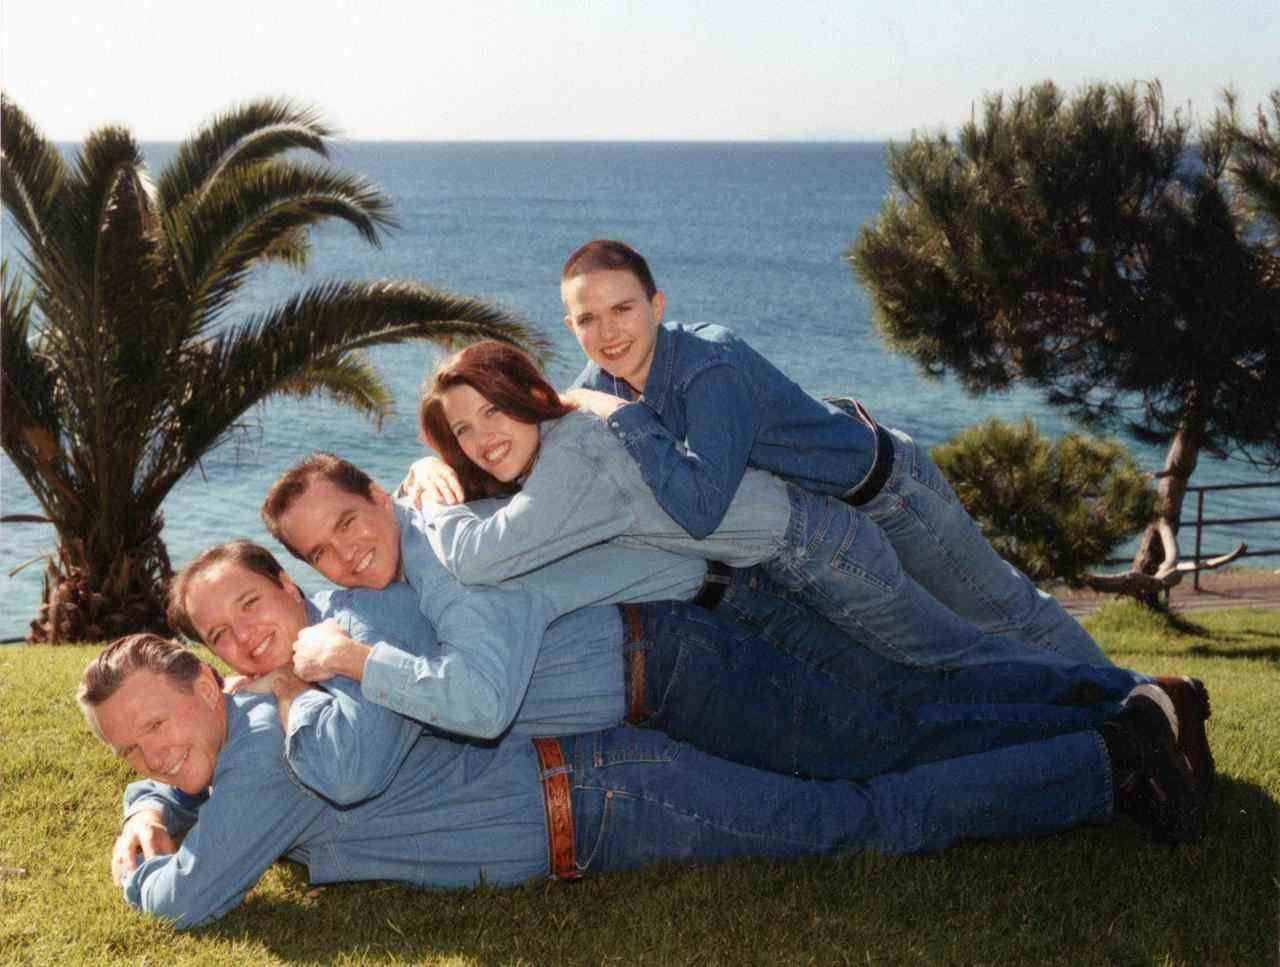 Inappropriate family pictures